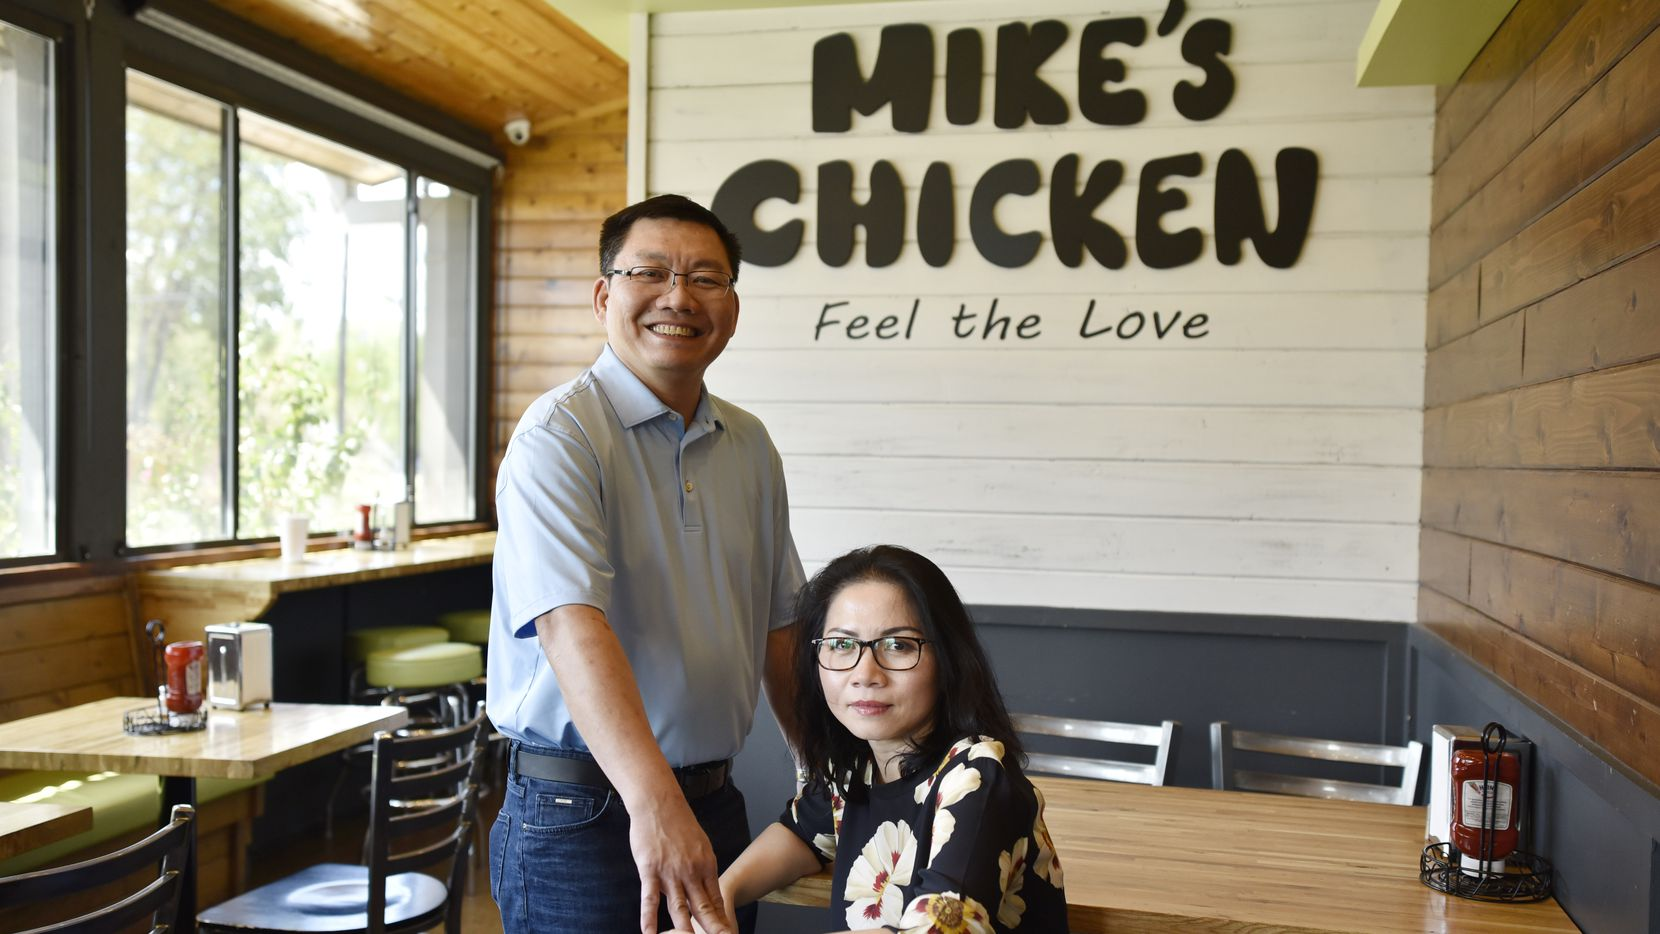 Son Dao, left, and Tram Dao, co owners of Mike's Chicken on Maple Avenue in Dallas, Tuesday Sept. 17, 2019. Ben Torres/Special Contributor